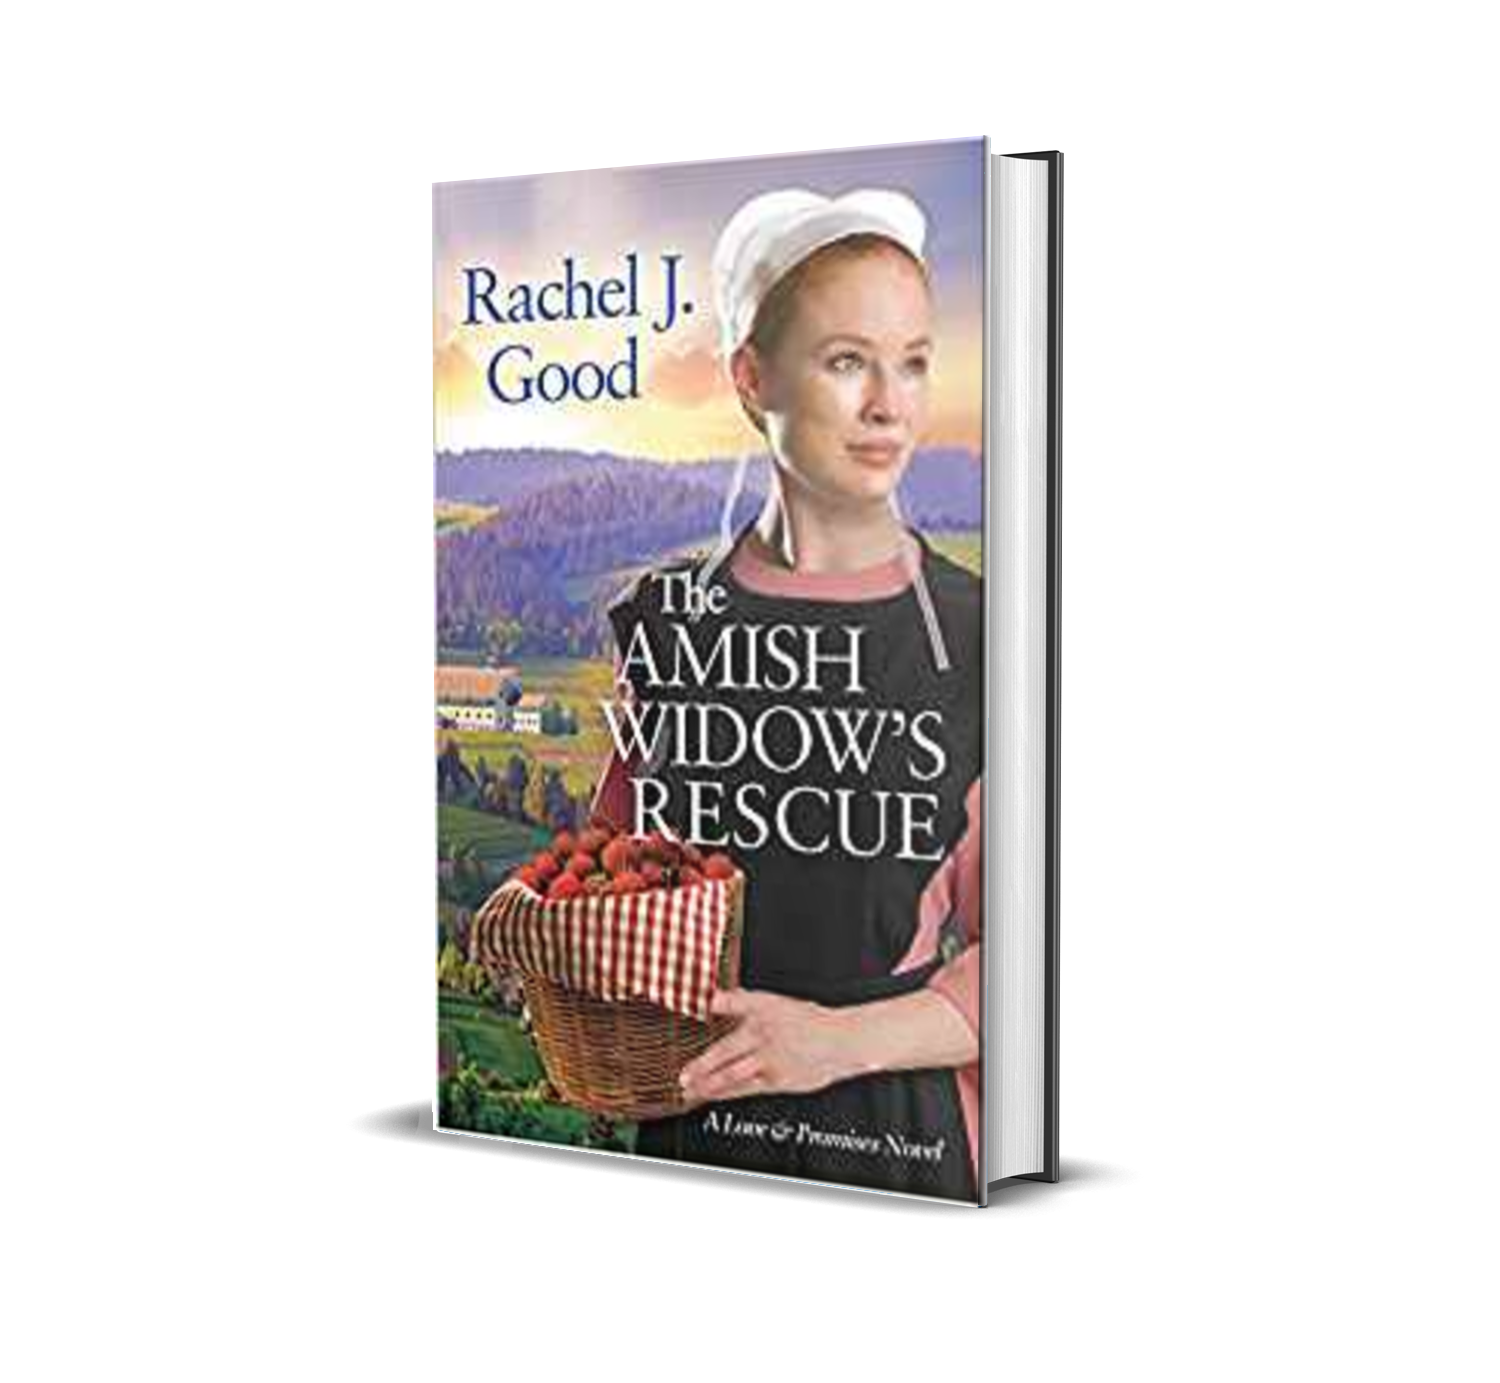 The Amish Widow's Rescue by Rachel J. Good